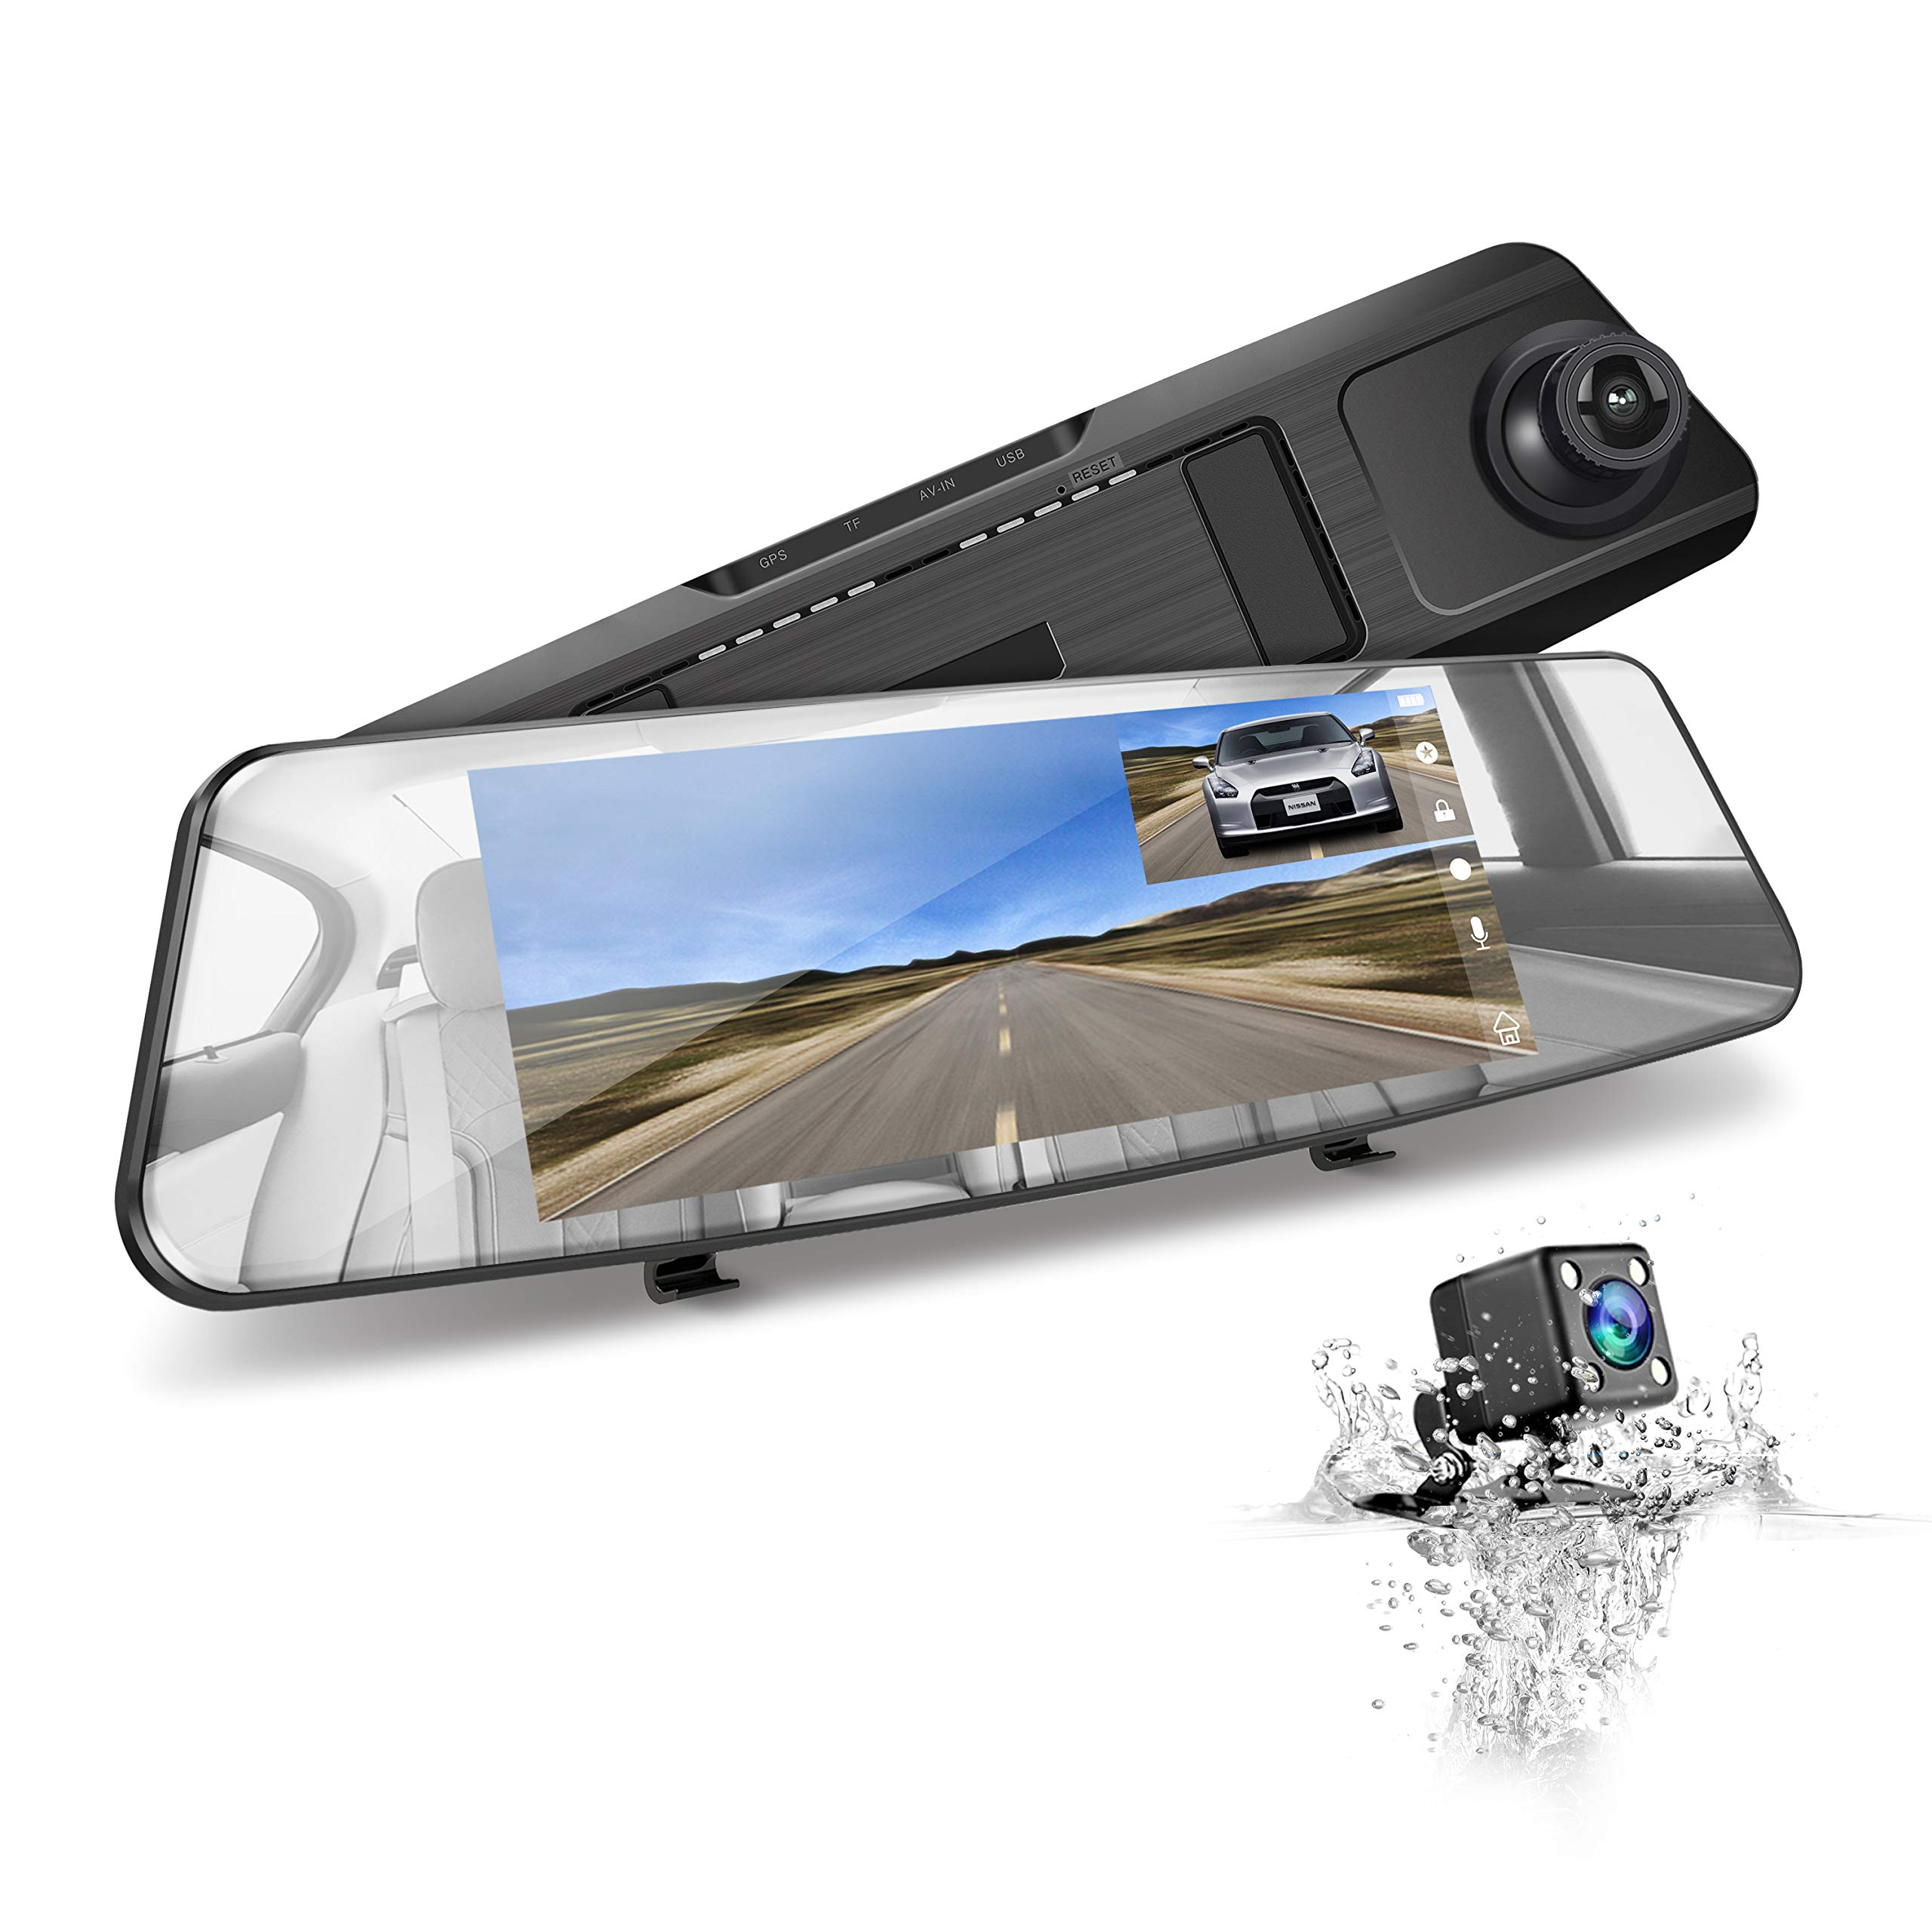 Mirror Reverse Backup Camera JEEMAK Dash Cam for Cars 7 inch Dual Lens Touch Screen 1080P Front and Rear View Vehicle Recorder